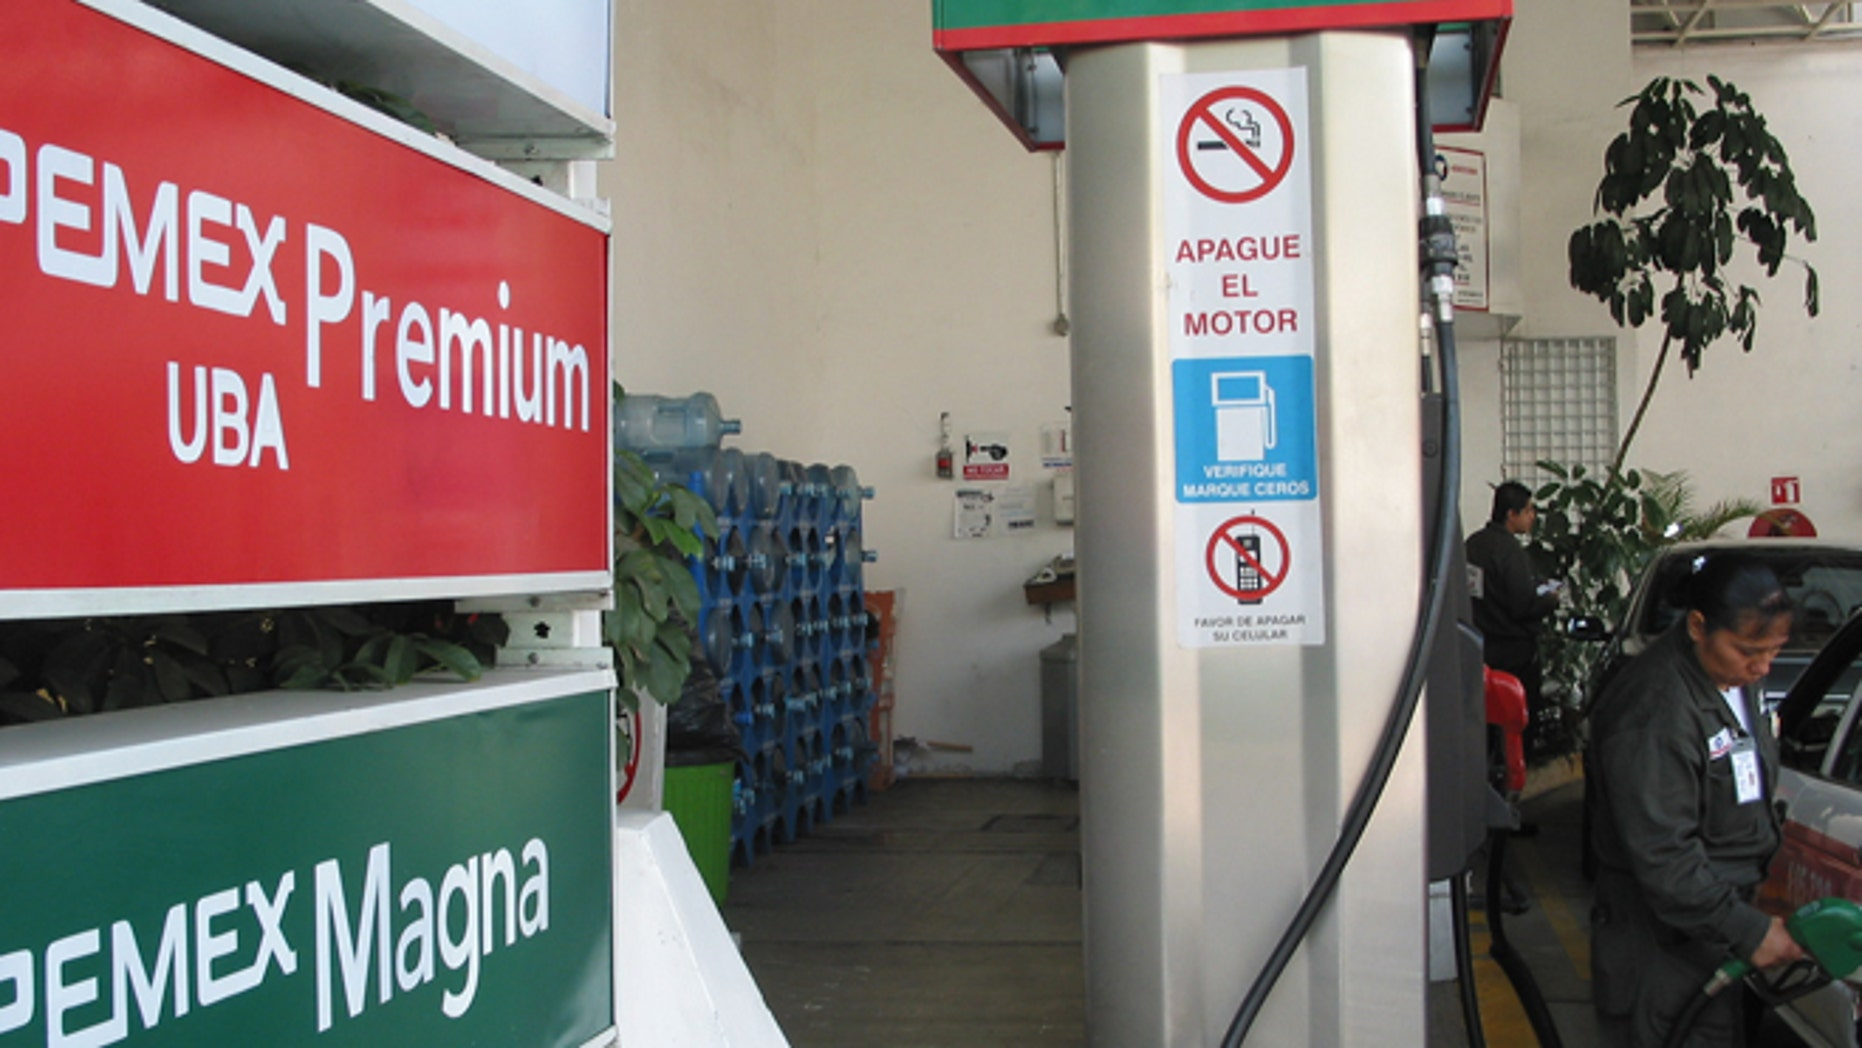 An attendant at a Mexico City gas station fills up a car on July 28, 2008. Mexican gas stations carry the Pemex name, but a lack of investment has left Mexico a net importer of gasoline. (Kevin G. Hall/MCT)